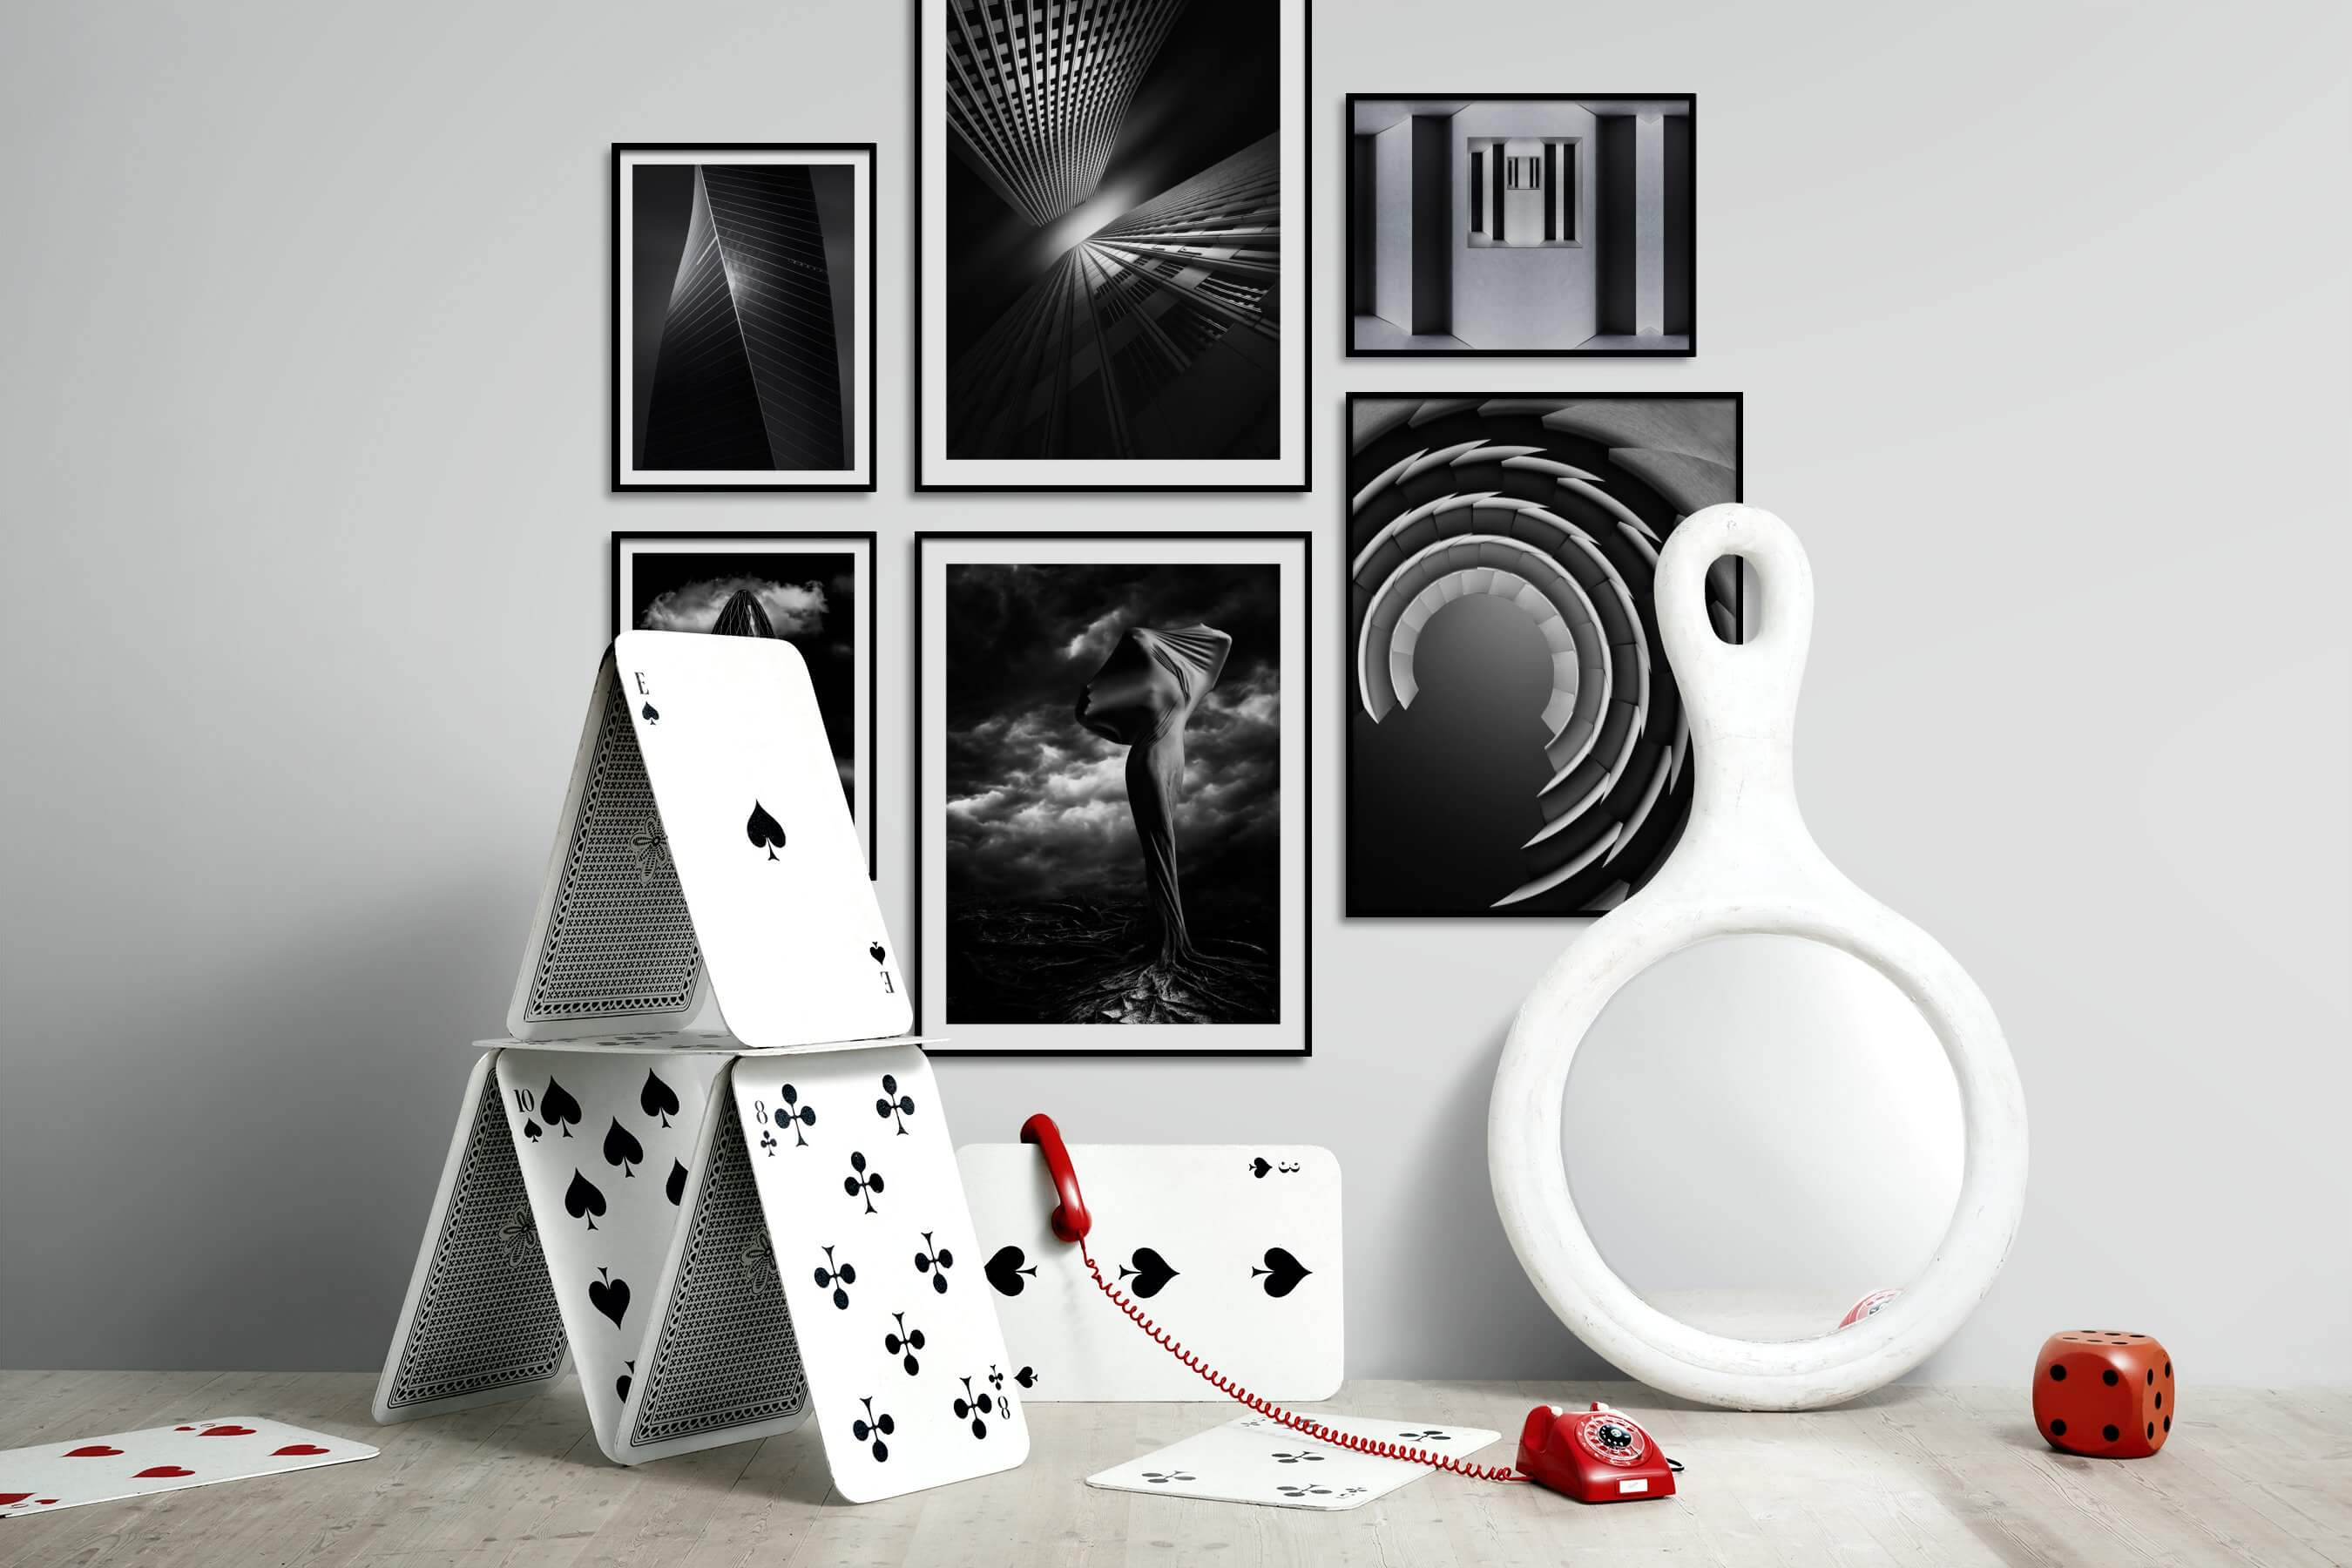 Gallery wall idea with six framed pictures arranged on a wall depicting Black & White, For the Minimalist, City Life, For the Moderate, and Artsy